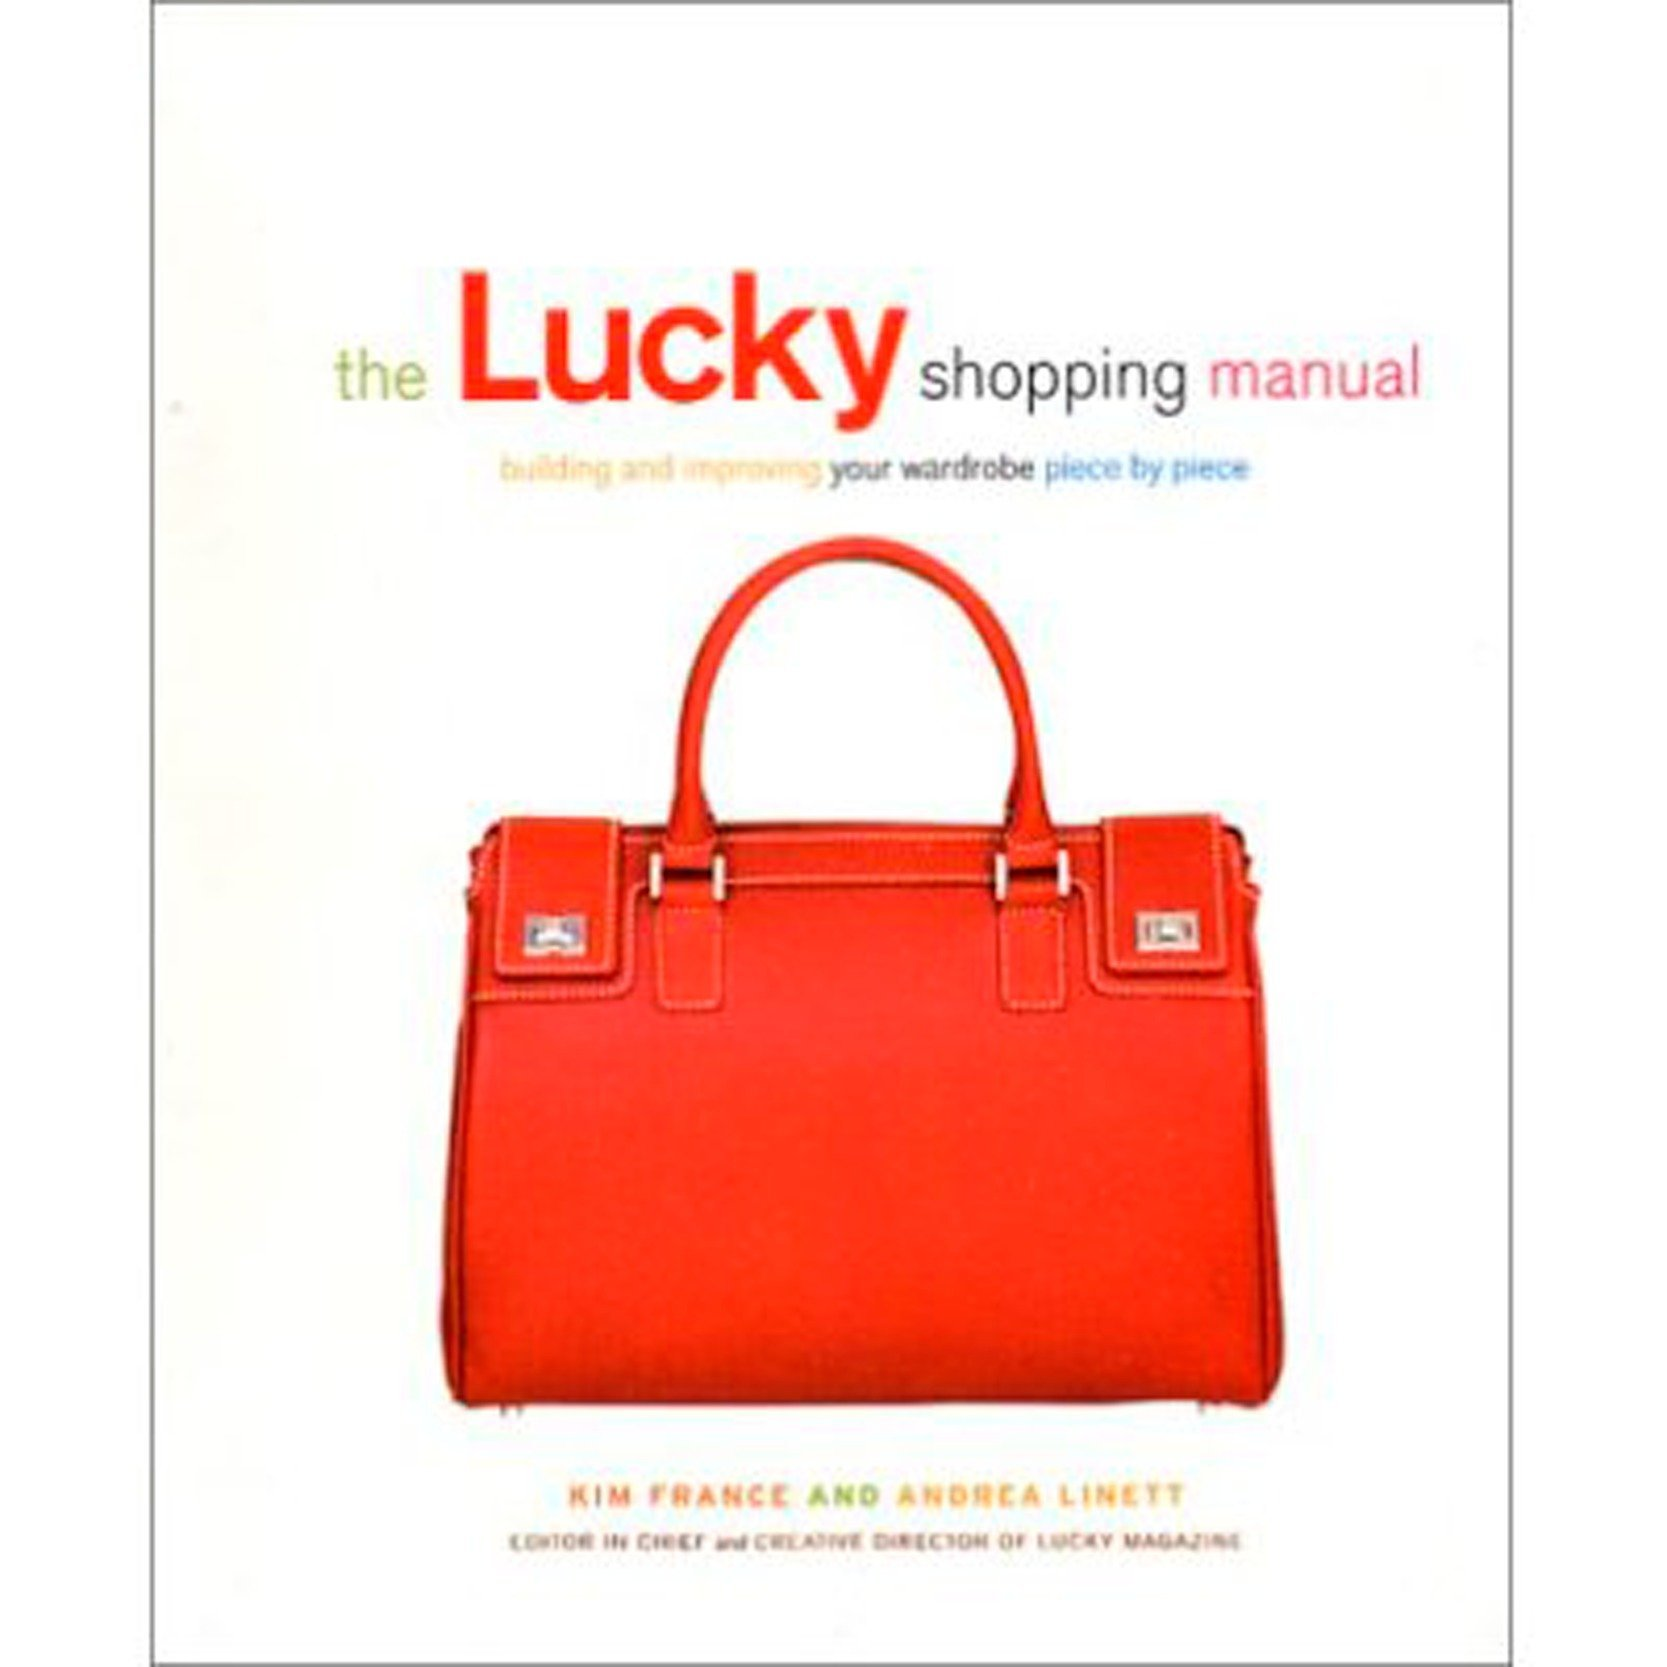 7a8fe6446284 The Lucky Shopping Manual  Building and Improving Your Wardrobe ...